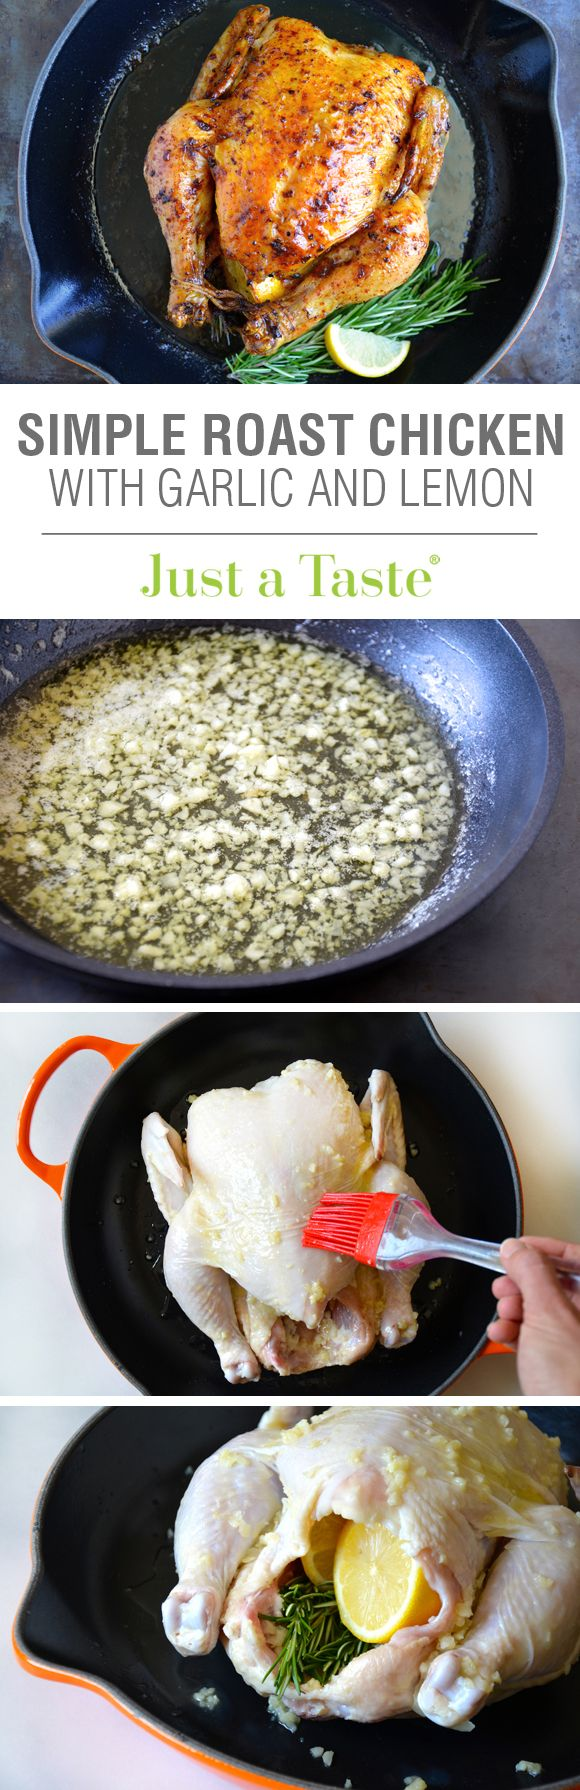 Simple Roast Chicken with Garlic and Lemon #recipe from justataste.com #Thanksgiving